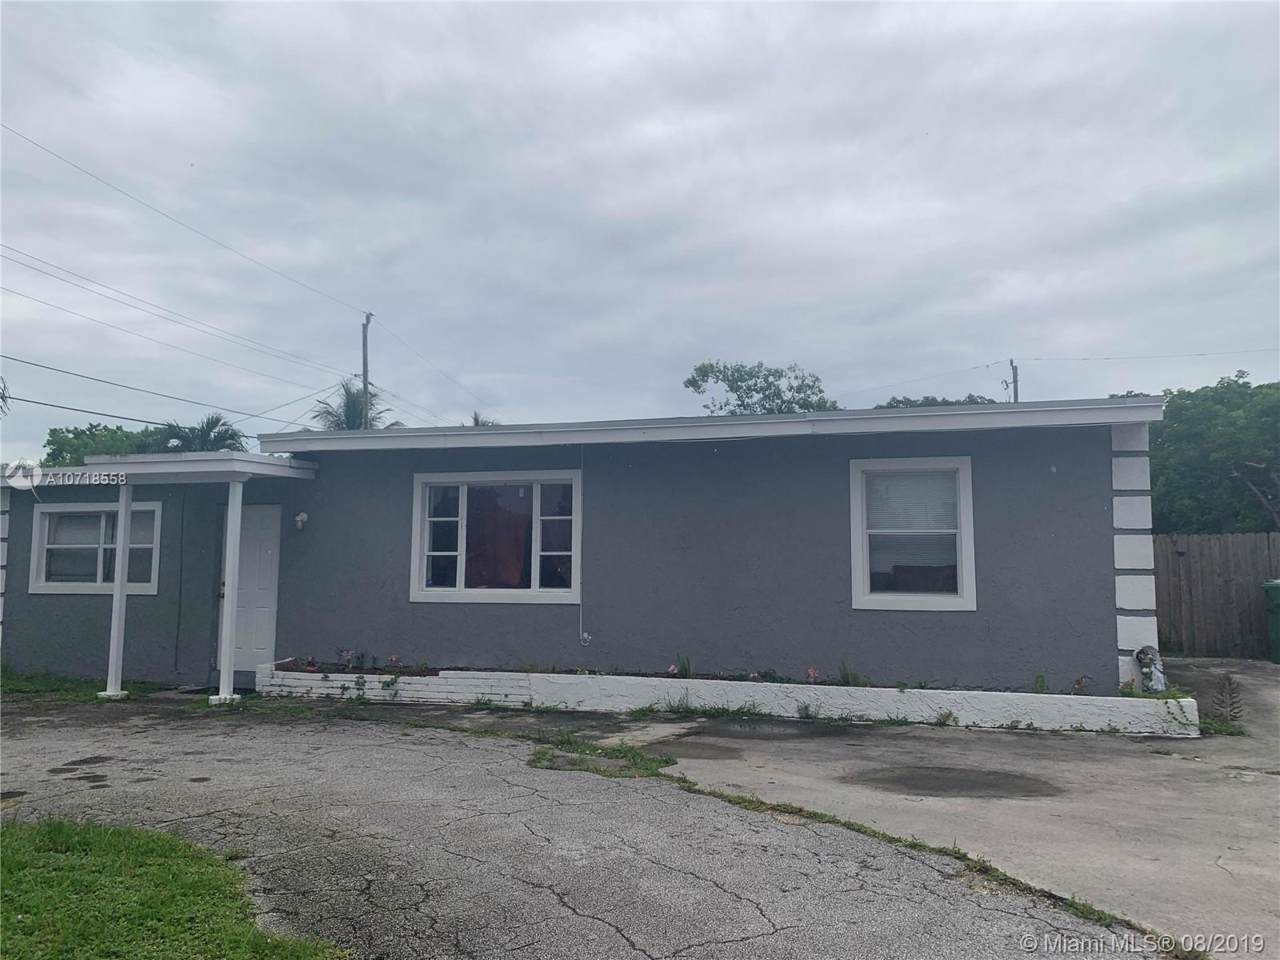 1025 Nw 11th Place - Photo 1